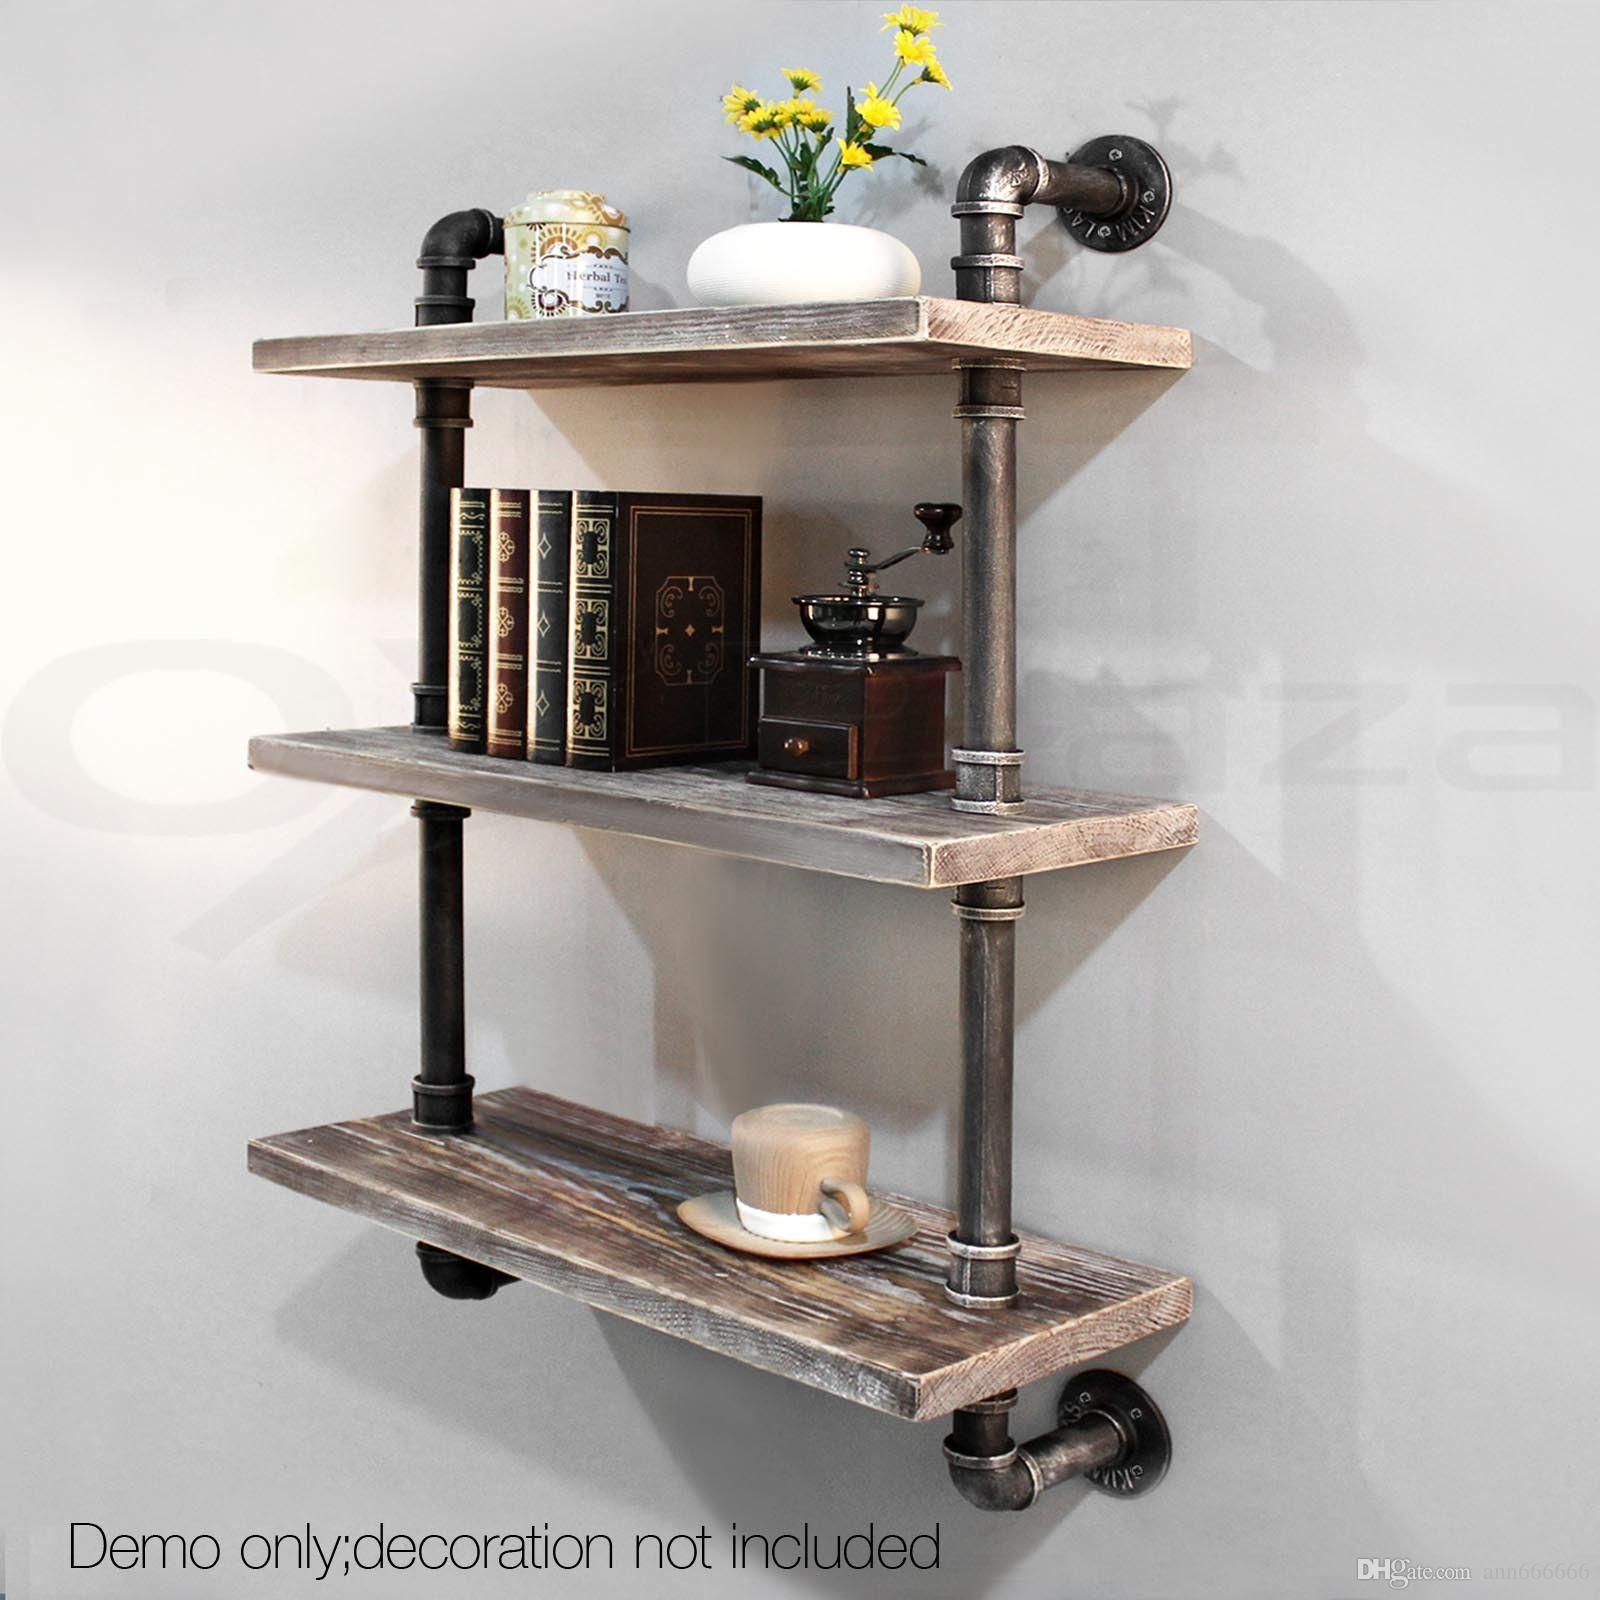 Old Bathroom Storage Bookcase Diy Industrial Retro Wall Mount Pipe Bookcaseindustrial Vintage Iron Pipe Three Tier Metal Tall Bookcase Three Tier Wall Shelves 3 Tier Bathroom Wall Shelf interior Three Tier Wall Shelf